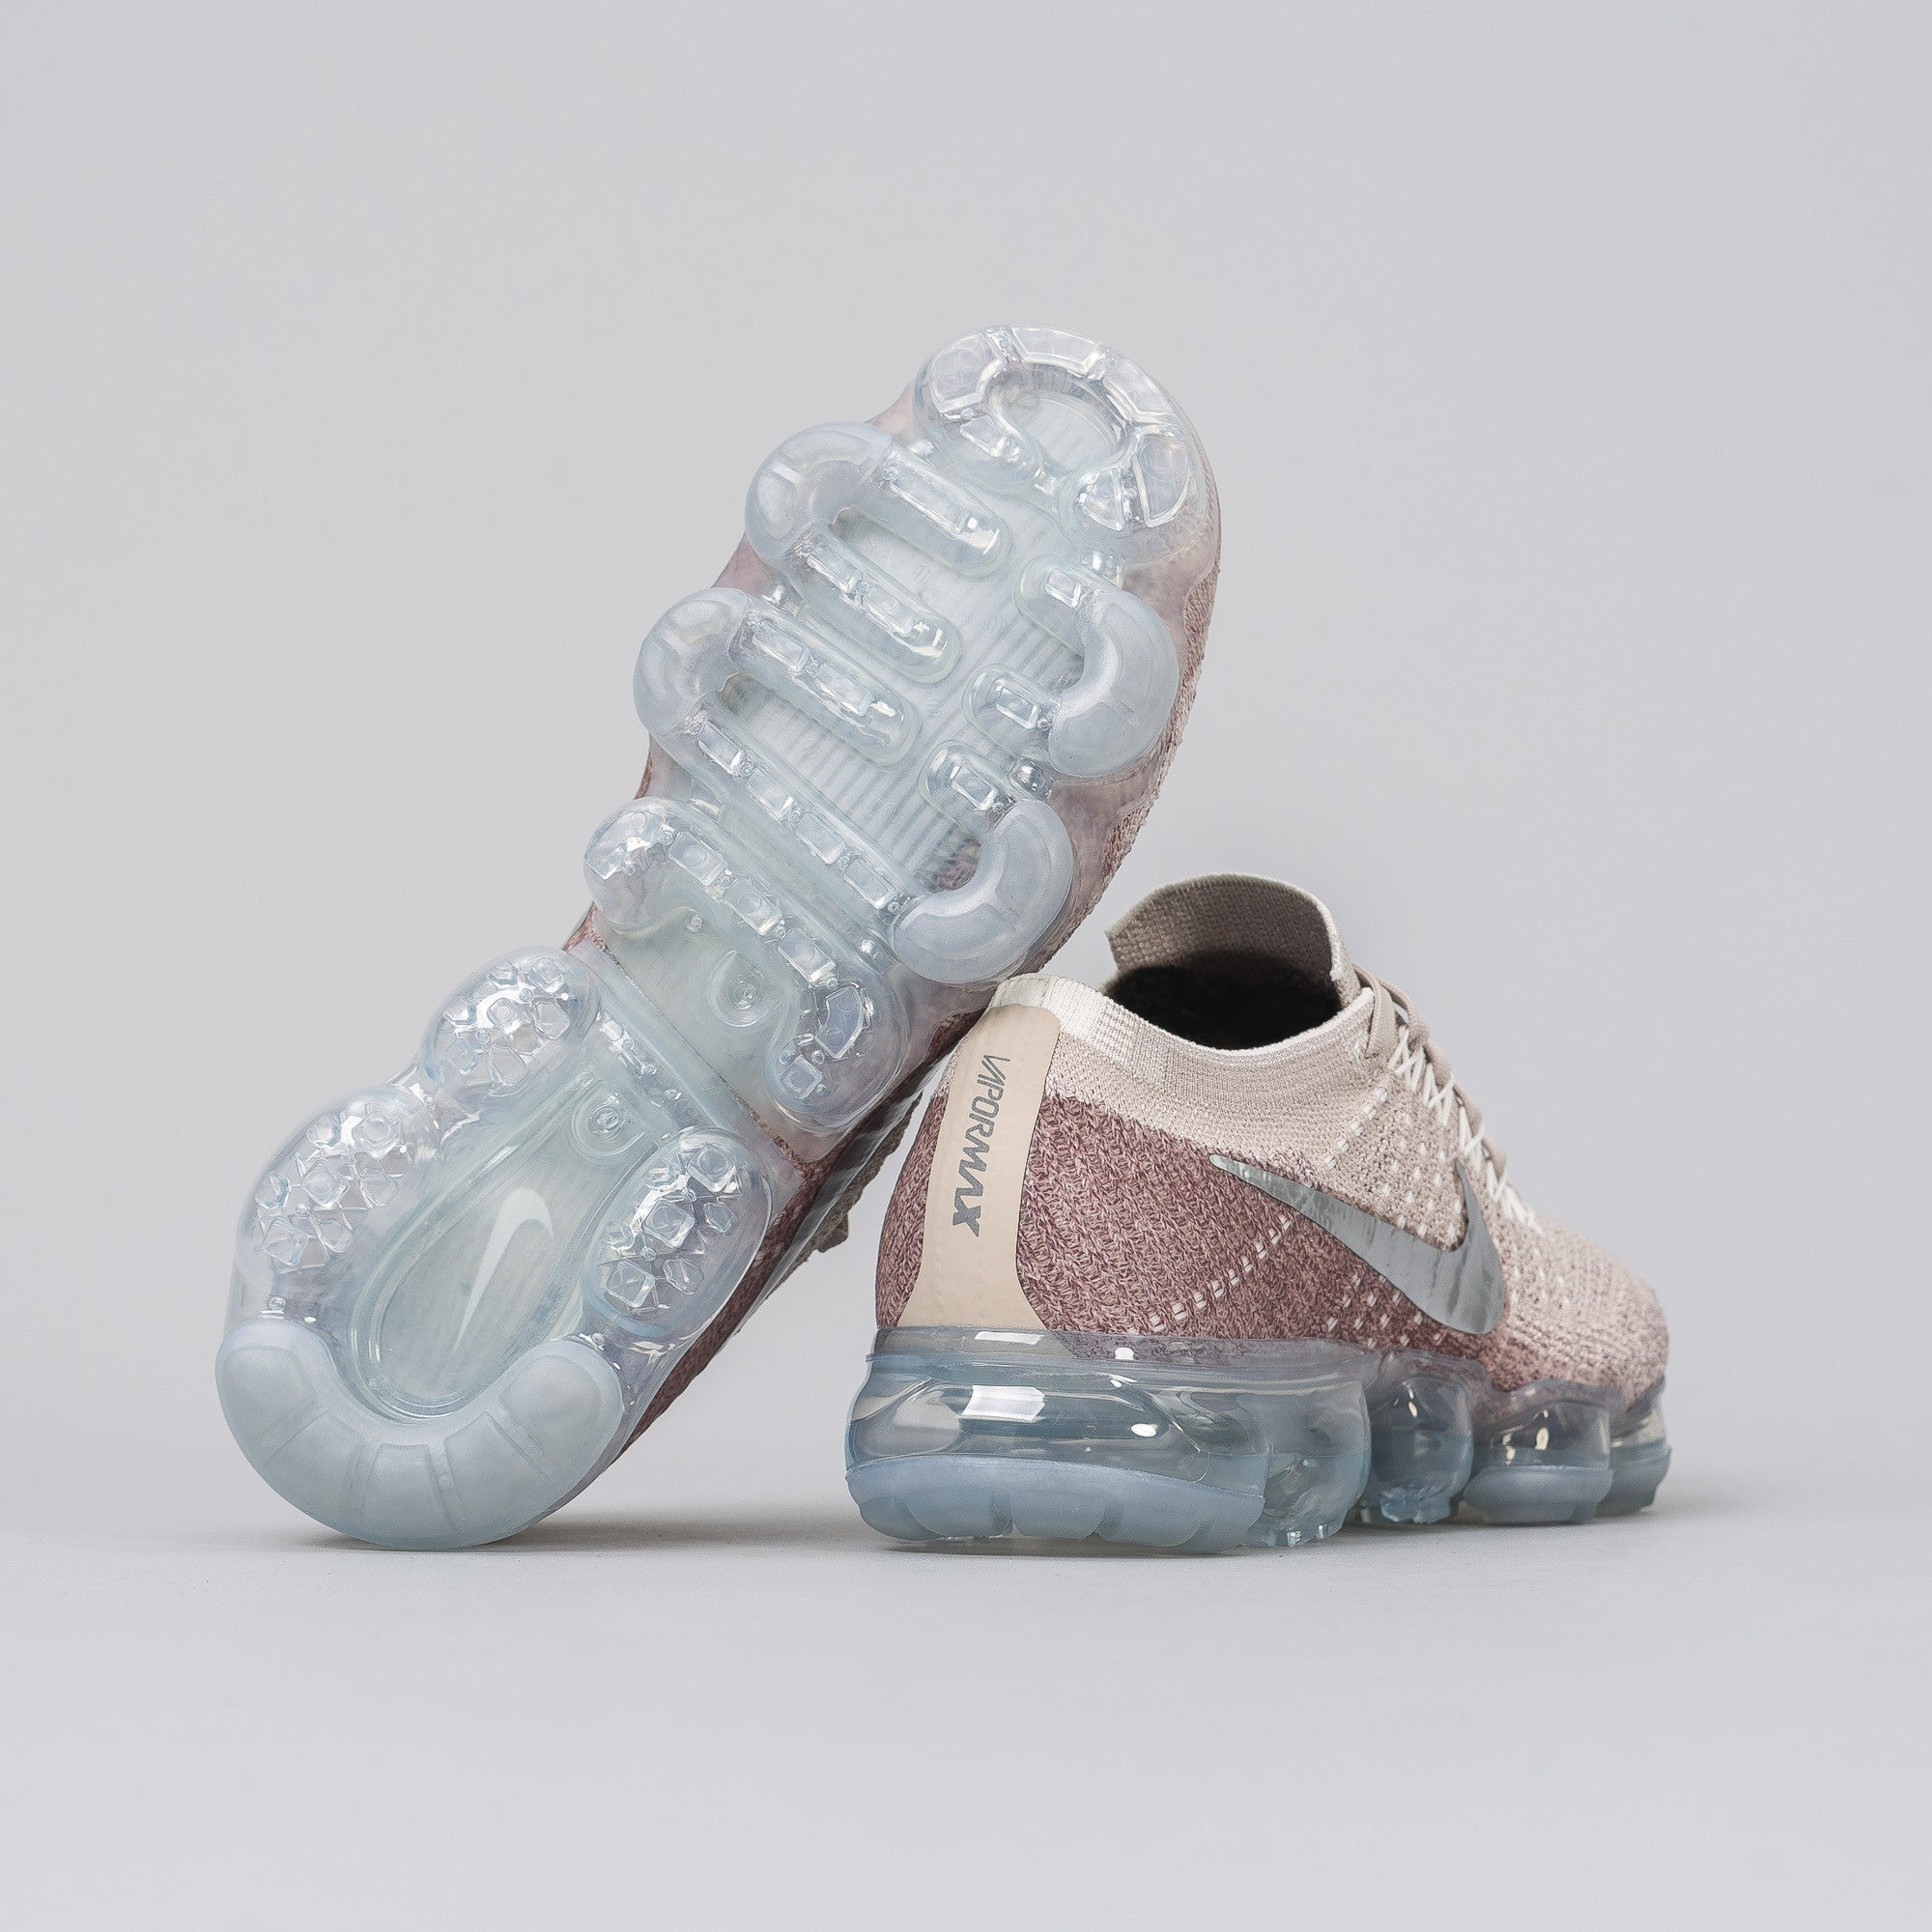 Nike 2015 Flyknit Nike Air Max New Releases Alliance for